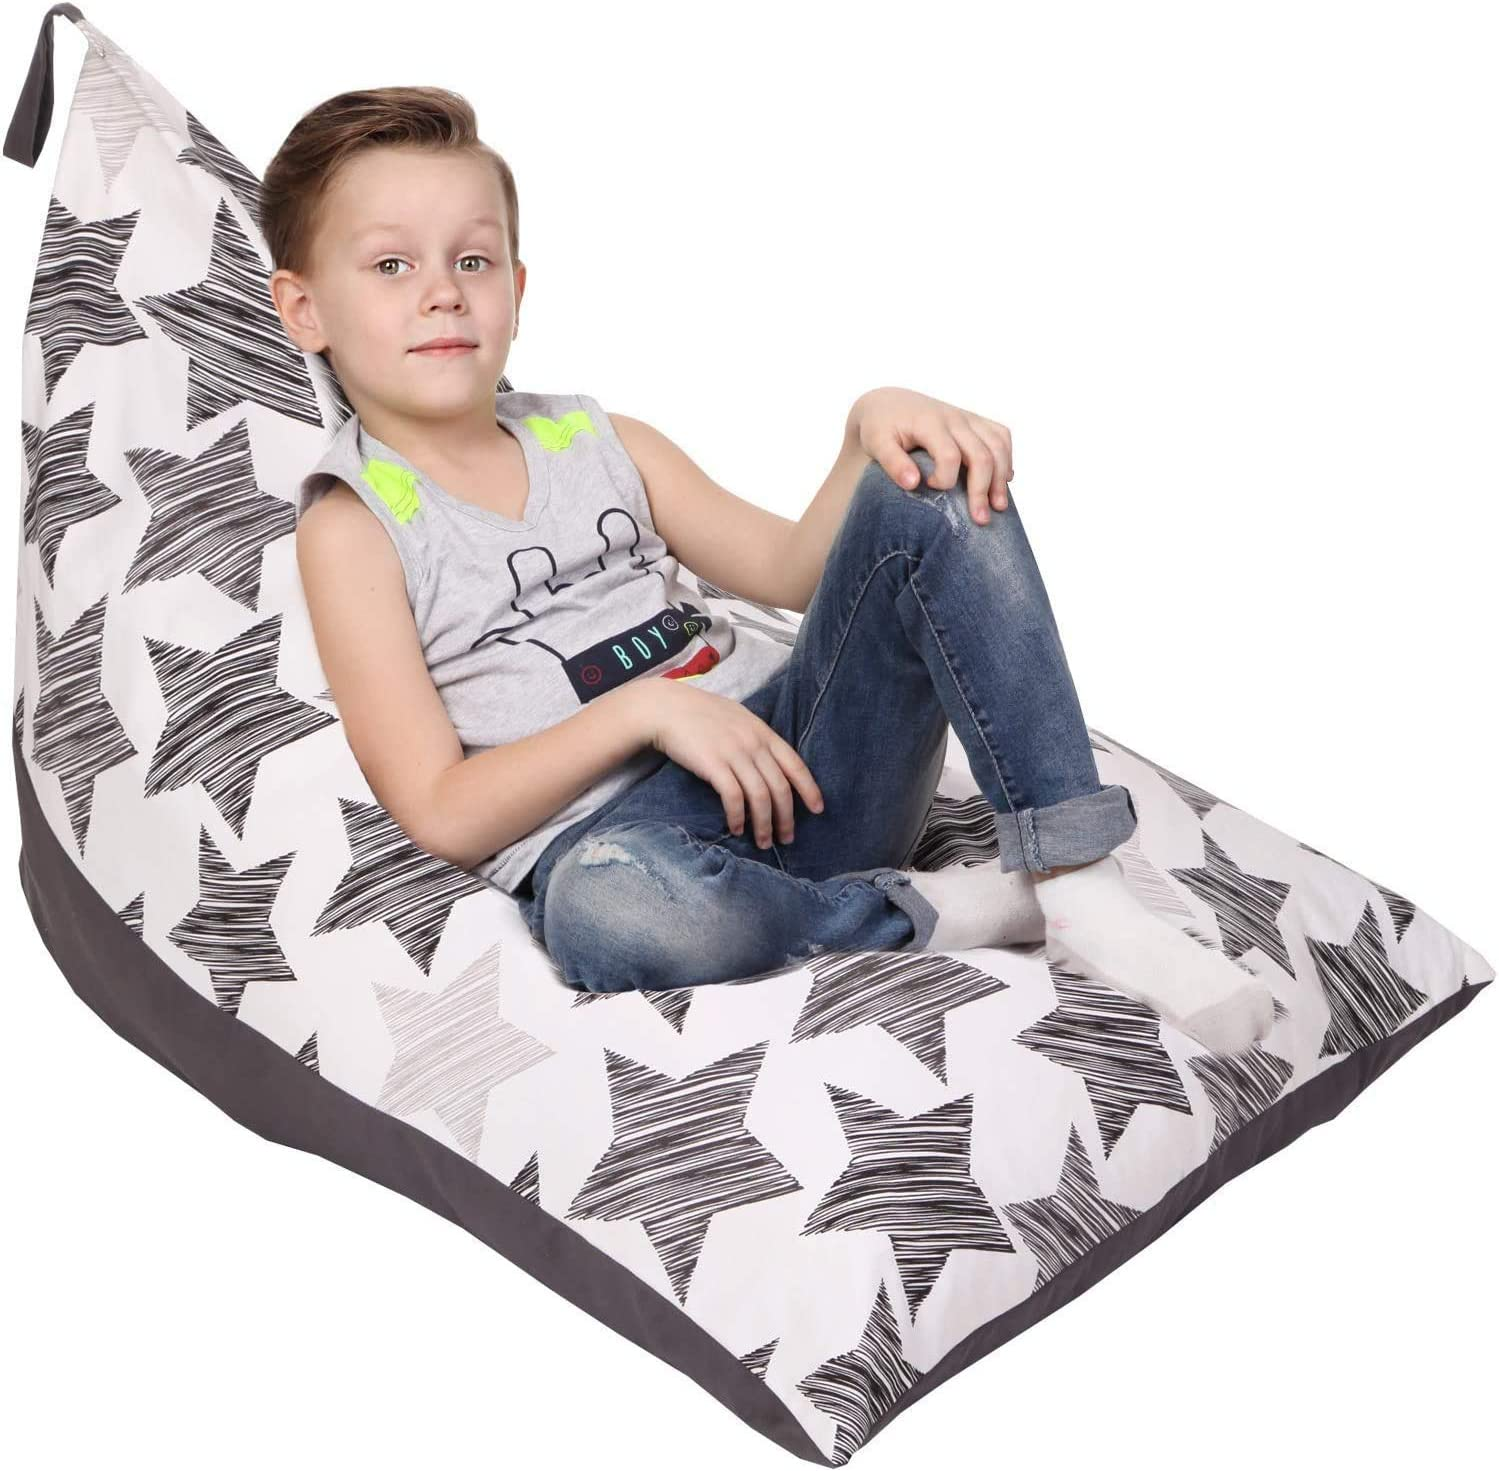 Home Soft Lazy Sofa Unfilled Bean Bag Chair Cover for Kids Teens Adults Cartoon Animal Print Large Bean Bag Stuffed Animal Doll Storage Solution Bago